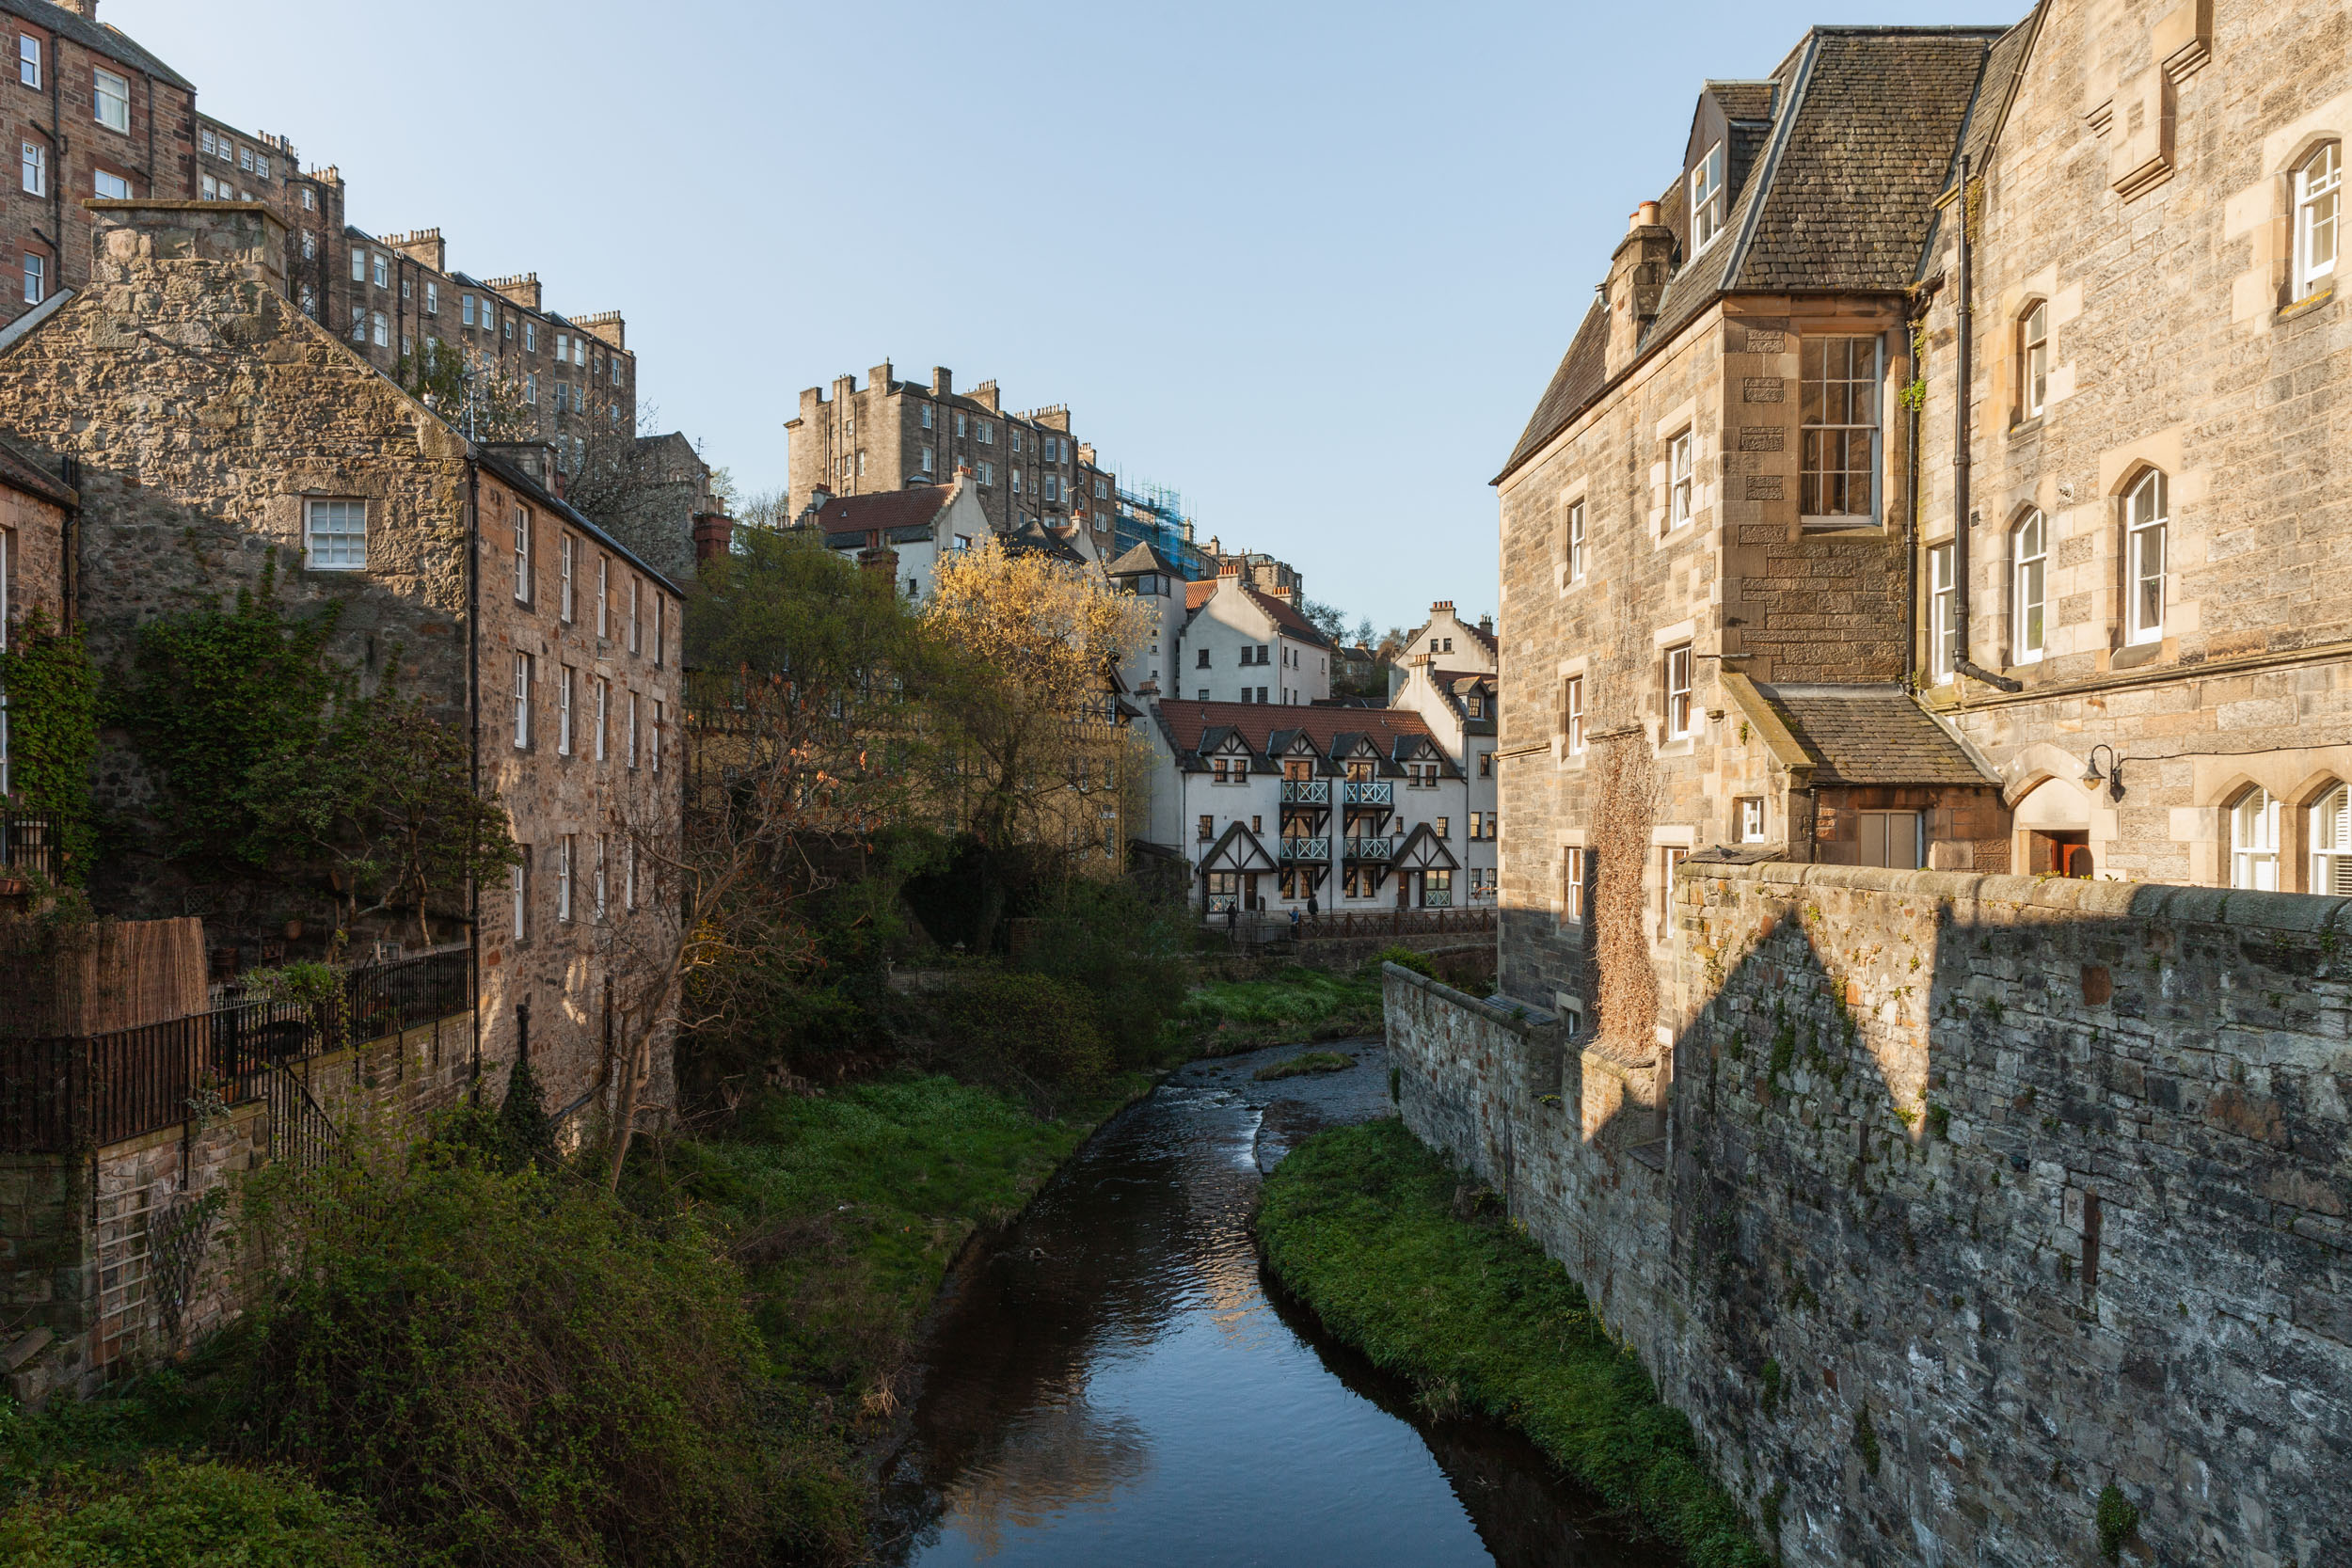 Early morning walk through Dean Village, along the Water of Leith walkway